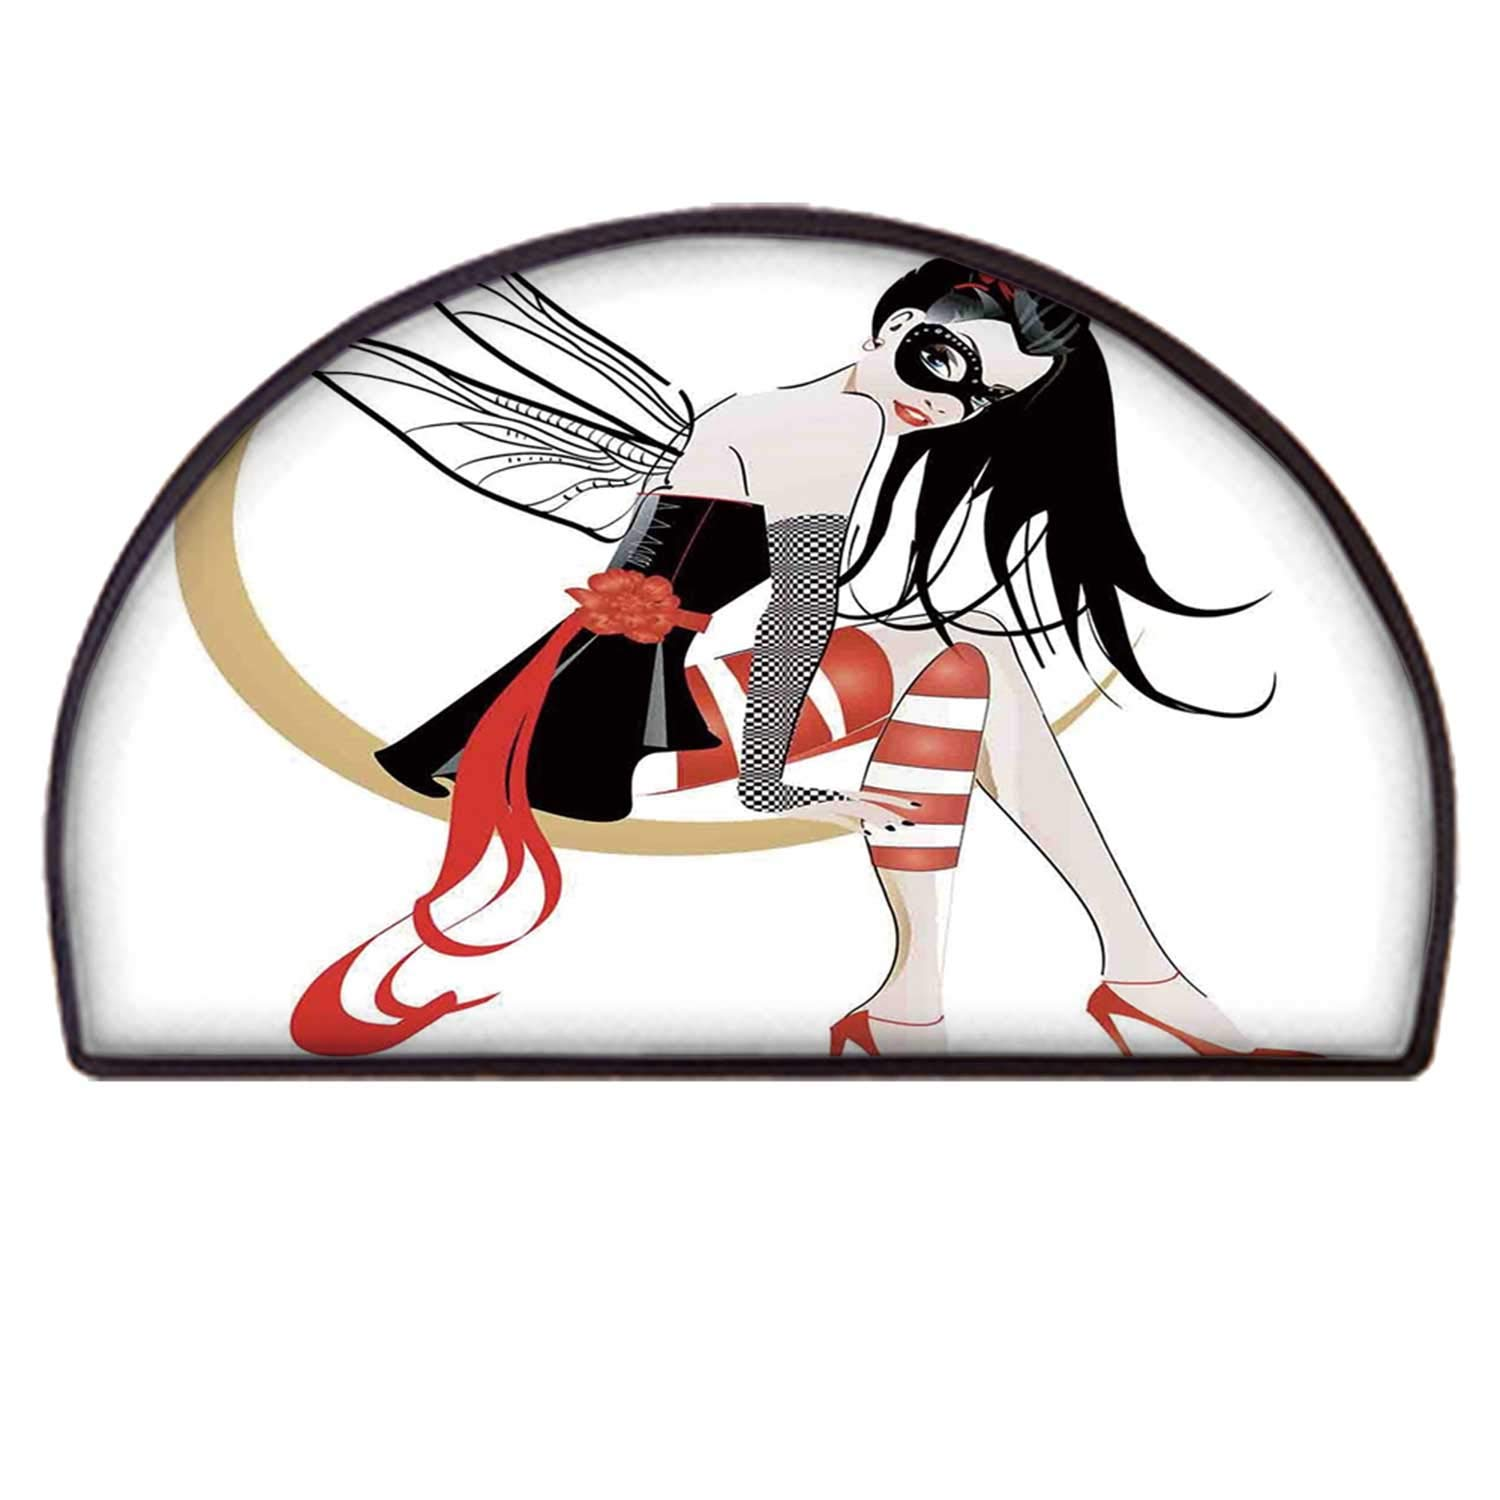 YOLIYANA Gothic Comfortable Semicircle Rug,Stylish Girl with Mask and Wings on The Moon Luna Fantasy Artsy High Heals Fashion for Door by YOLIYANA